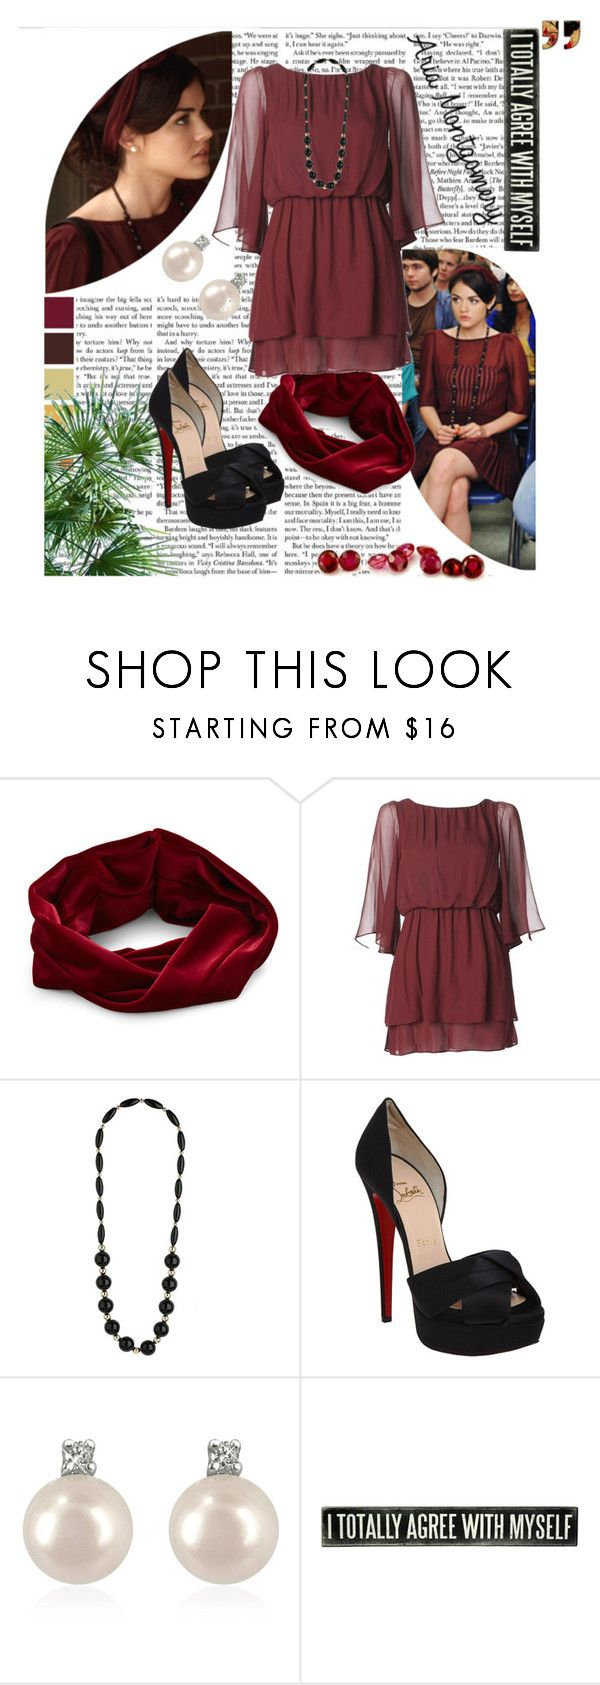 """""""Aria <3"""" by nice96 ❤ liked on Polyvore featuring Eva Franco, Christian Louboutin, Forzieri, WALL and Rubis"""